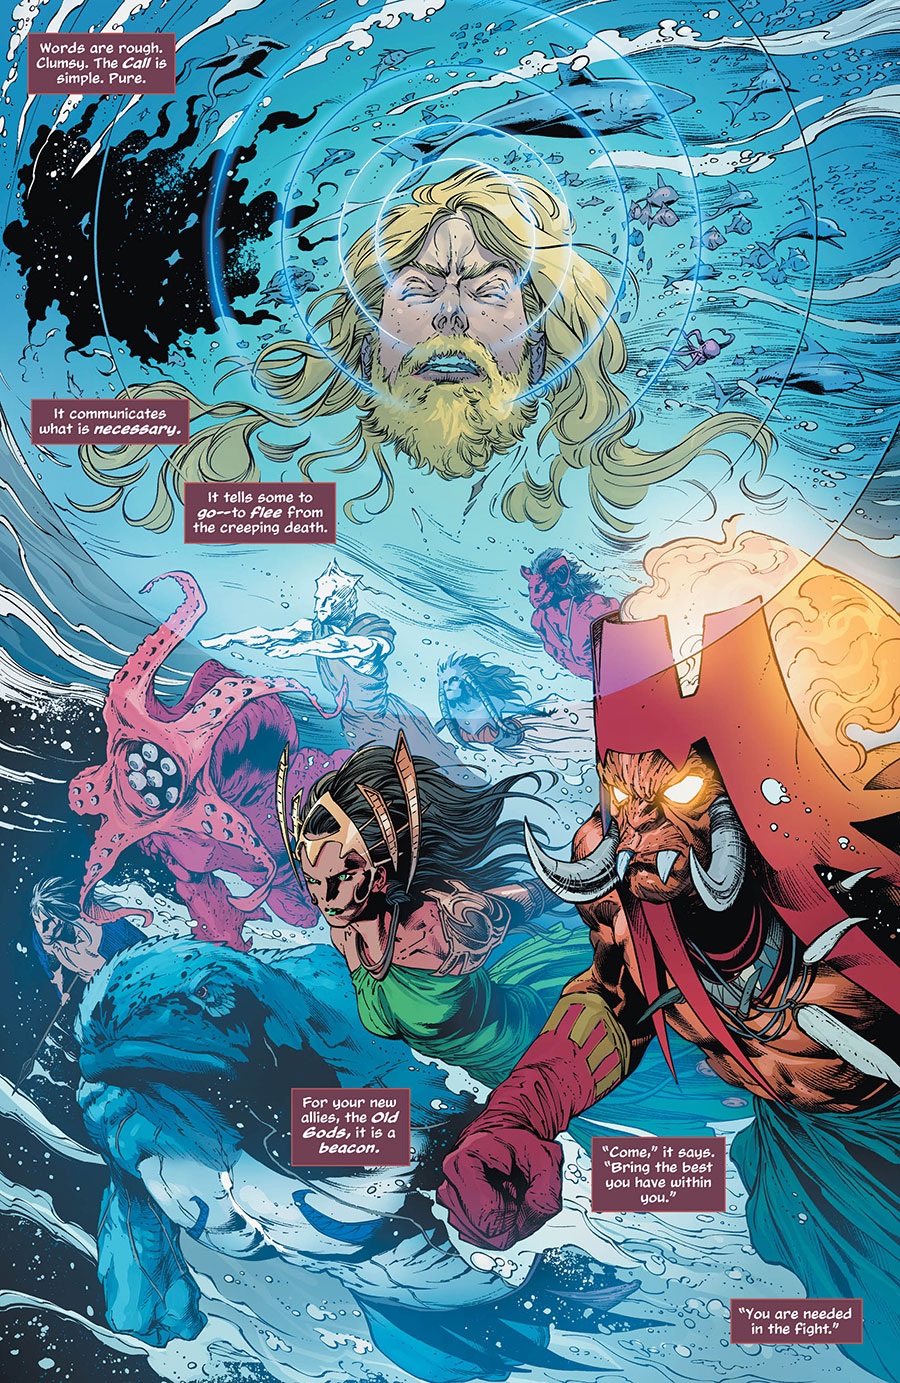 Aquaman_47_2 - DC Comics News